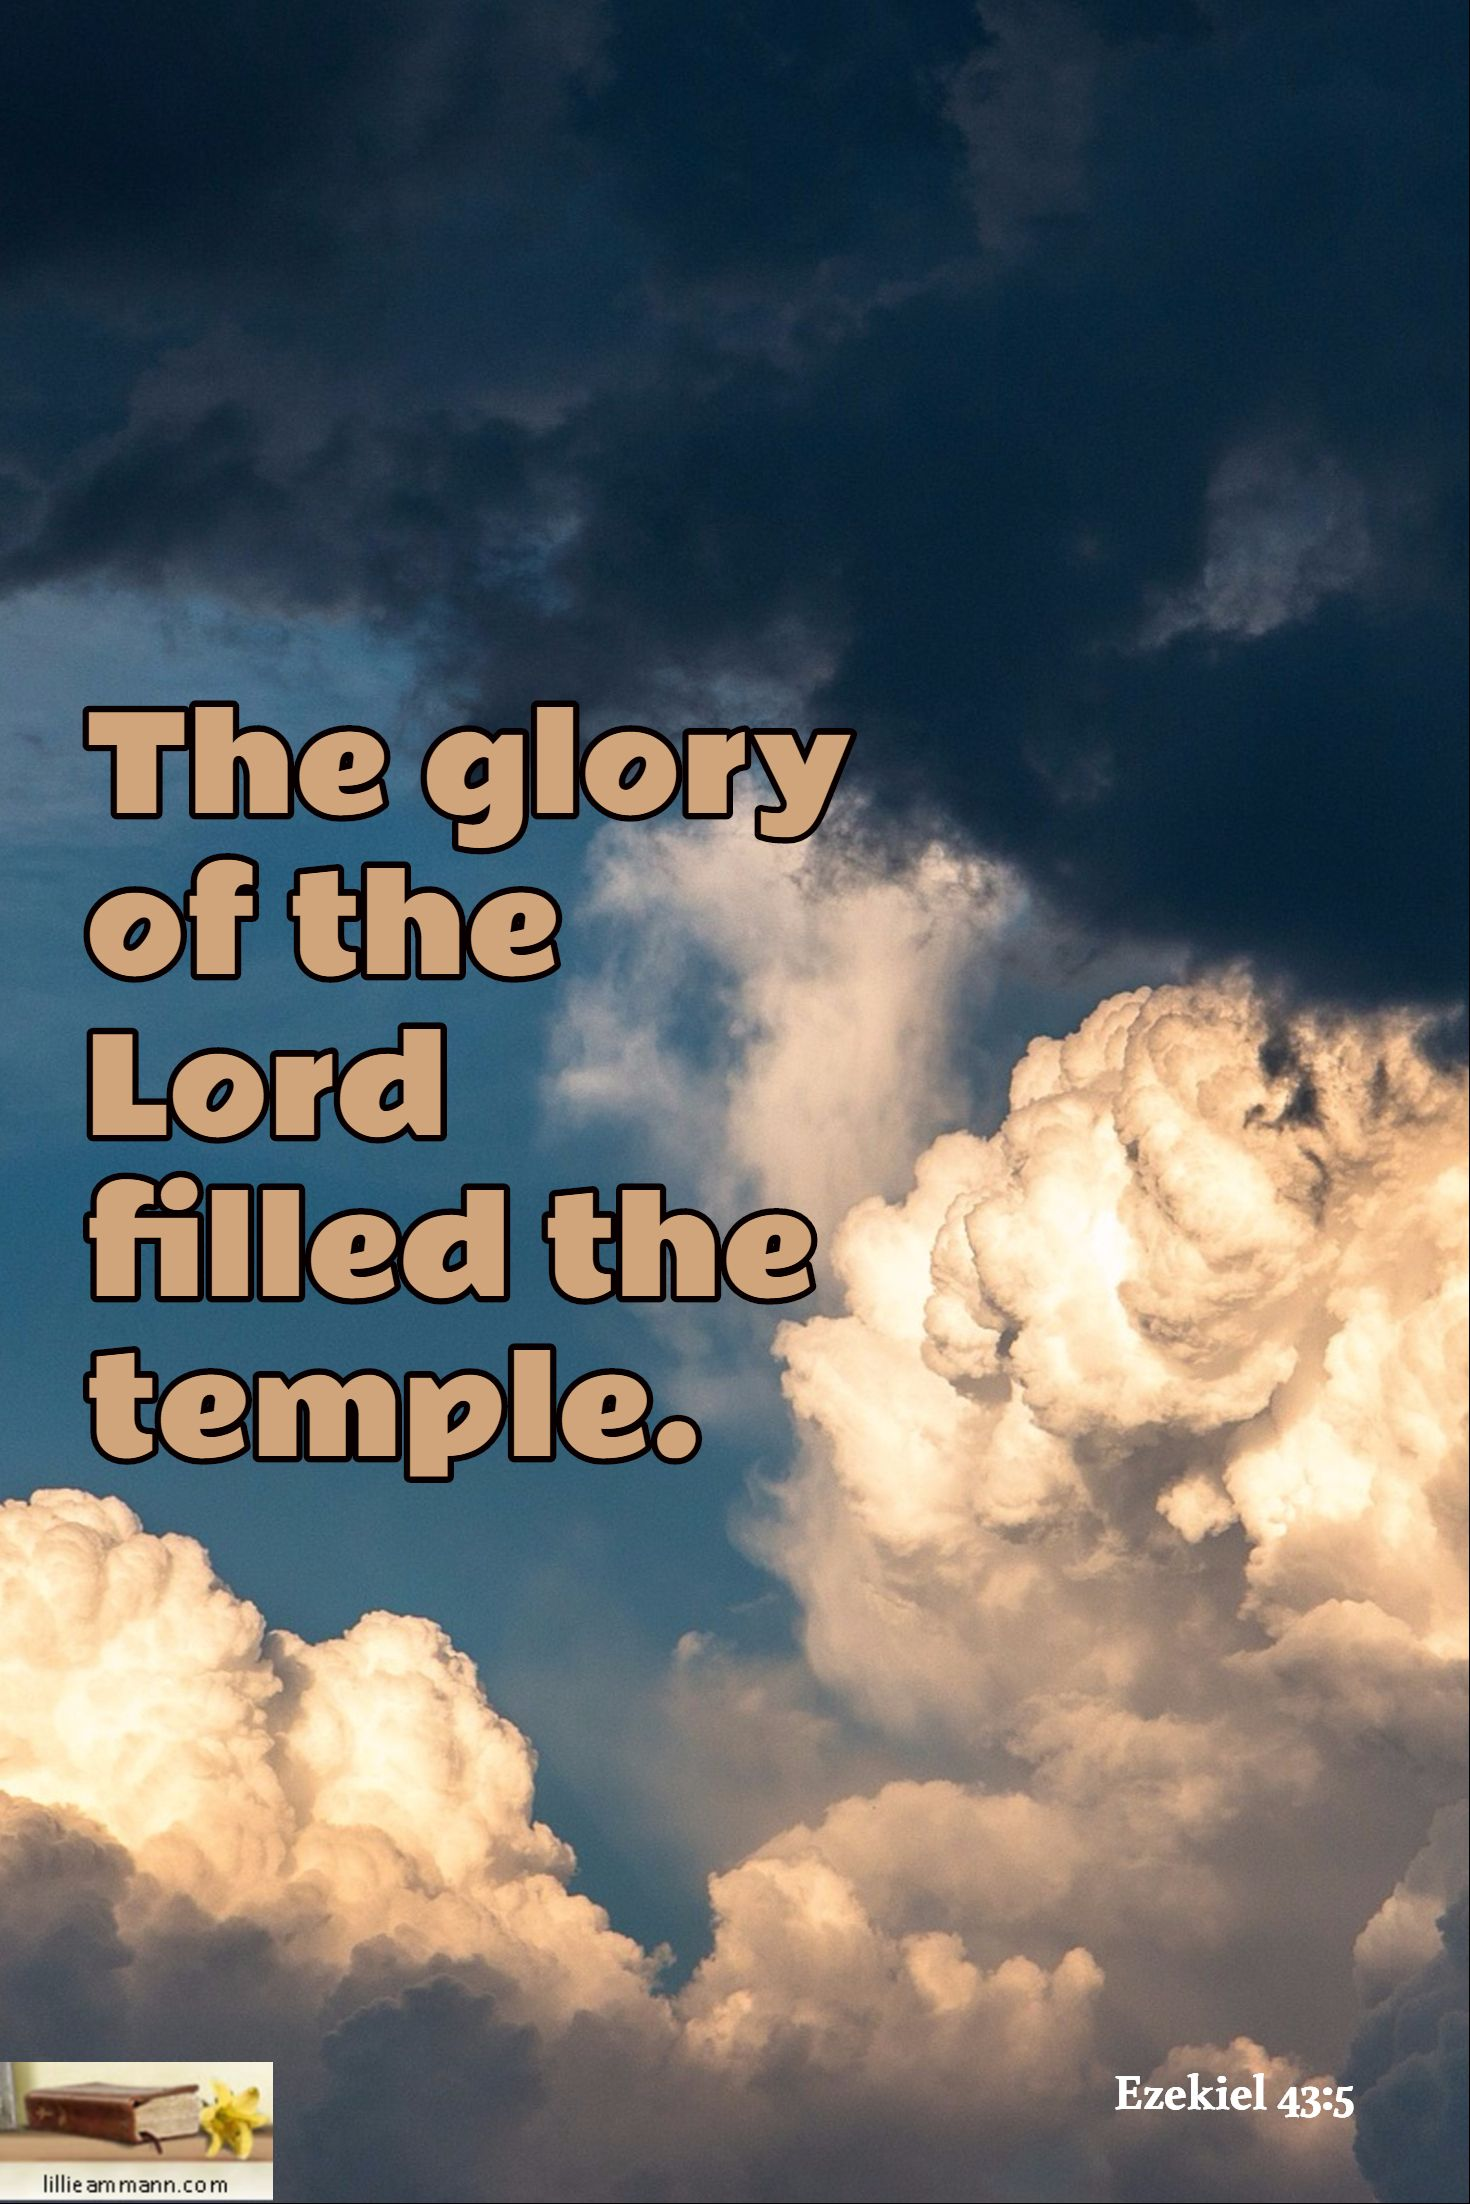 Ezekiel 43 5 The Glory Of The Lord Filled The Temple Scripture Ezekiel Holy Bible